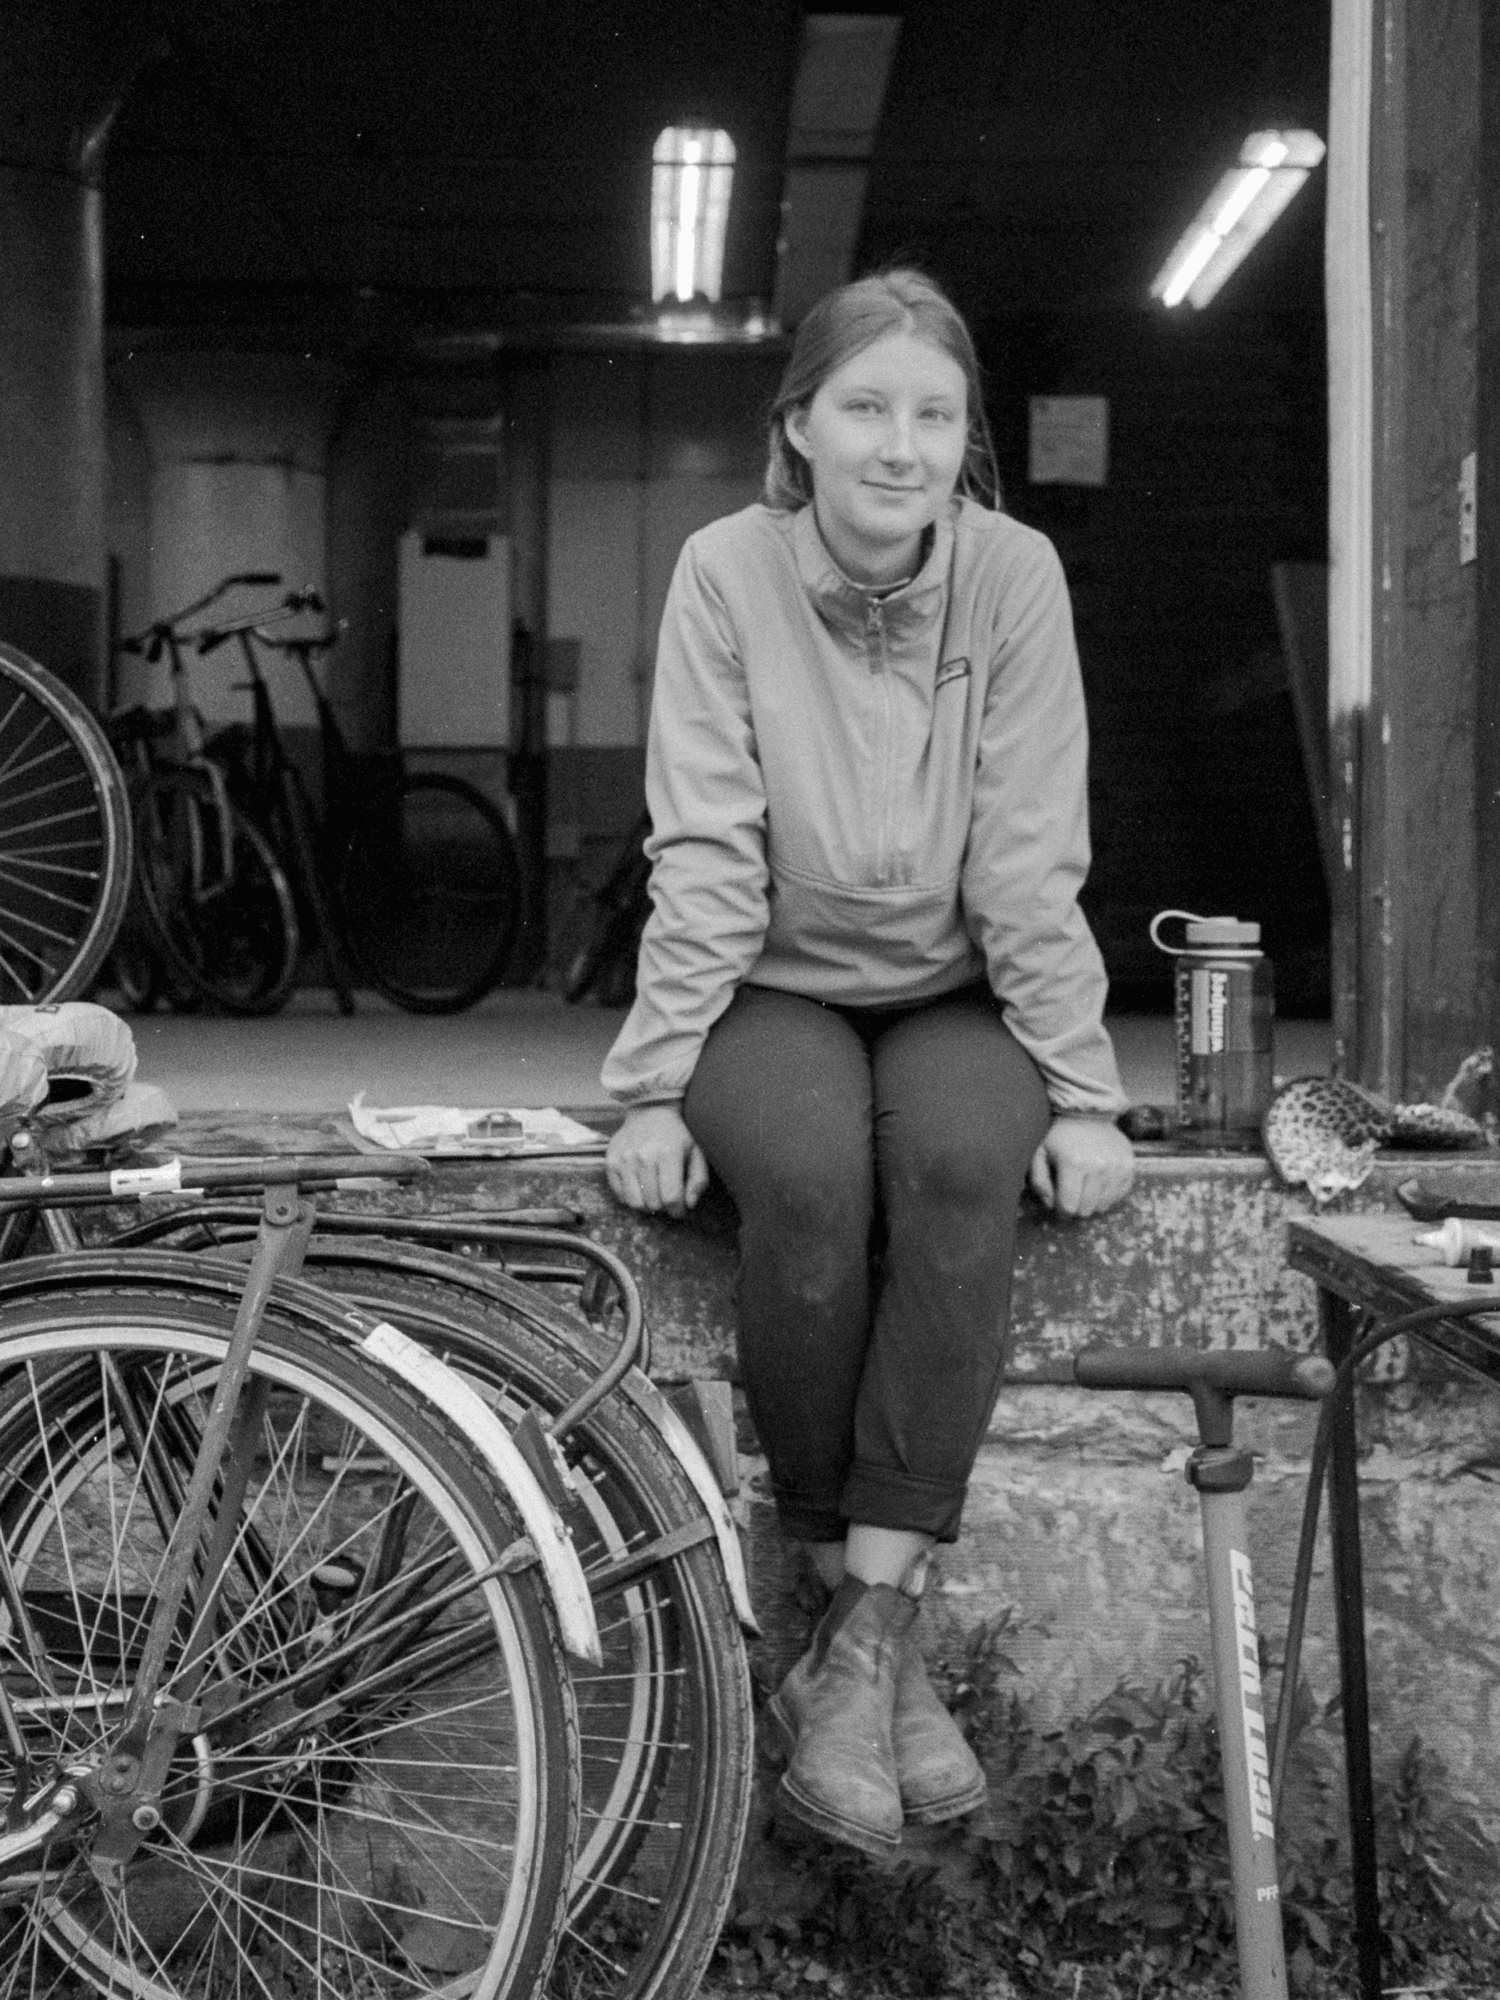 Jenny sitting surrounded by bikes